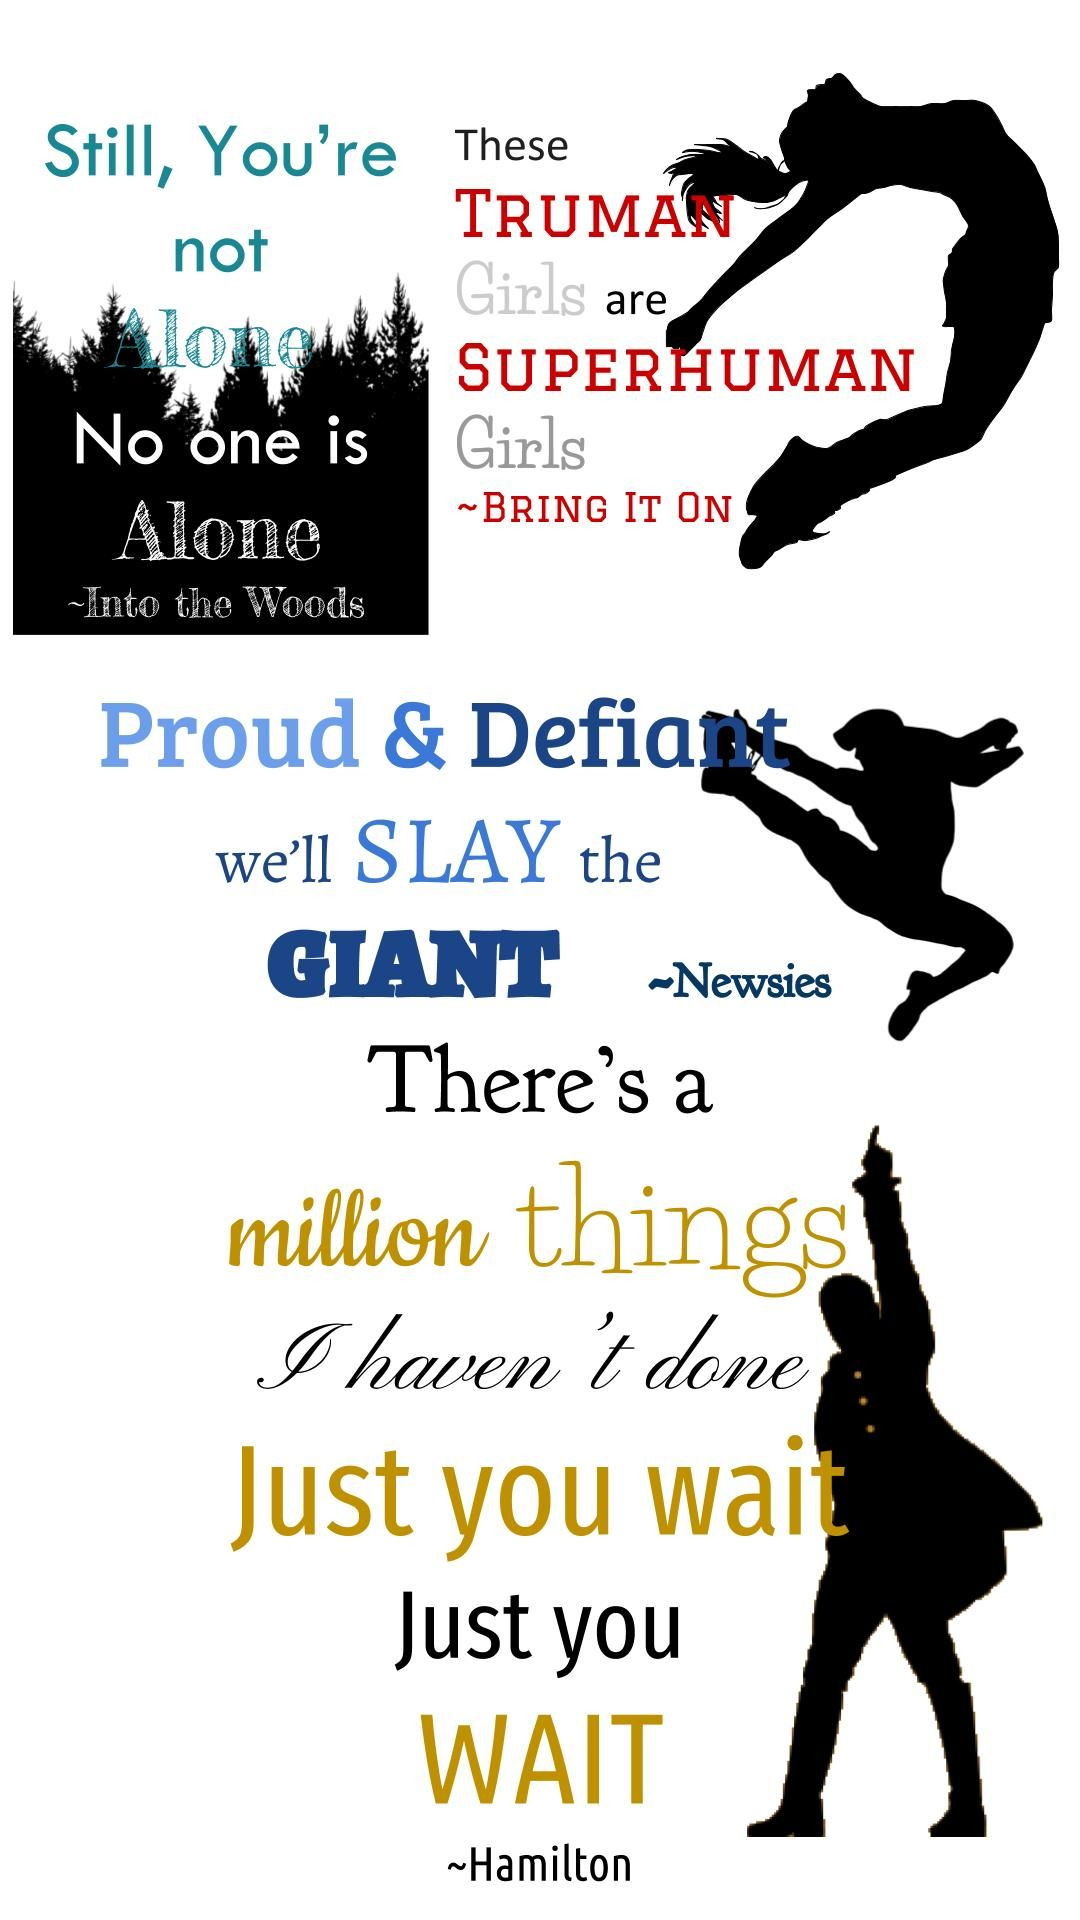 Musical Quotes In The Woods Bring It On Newsies Hamilton